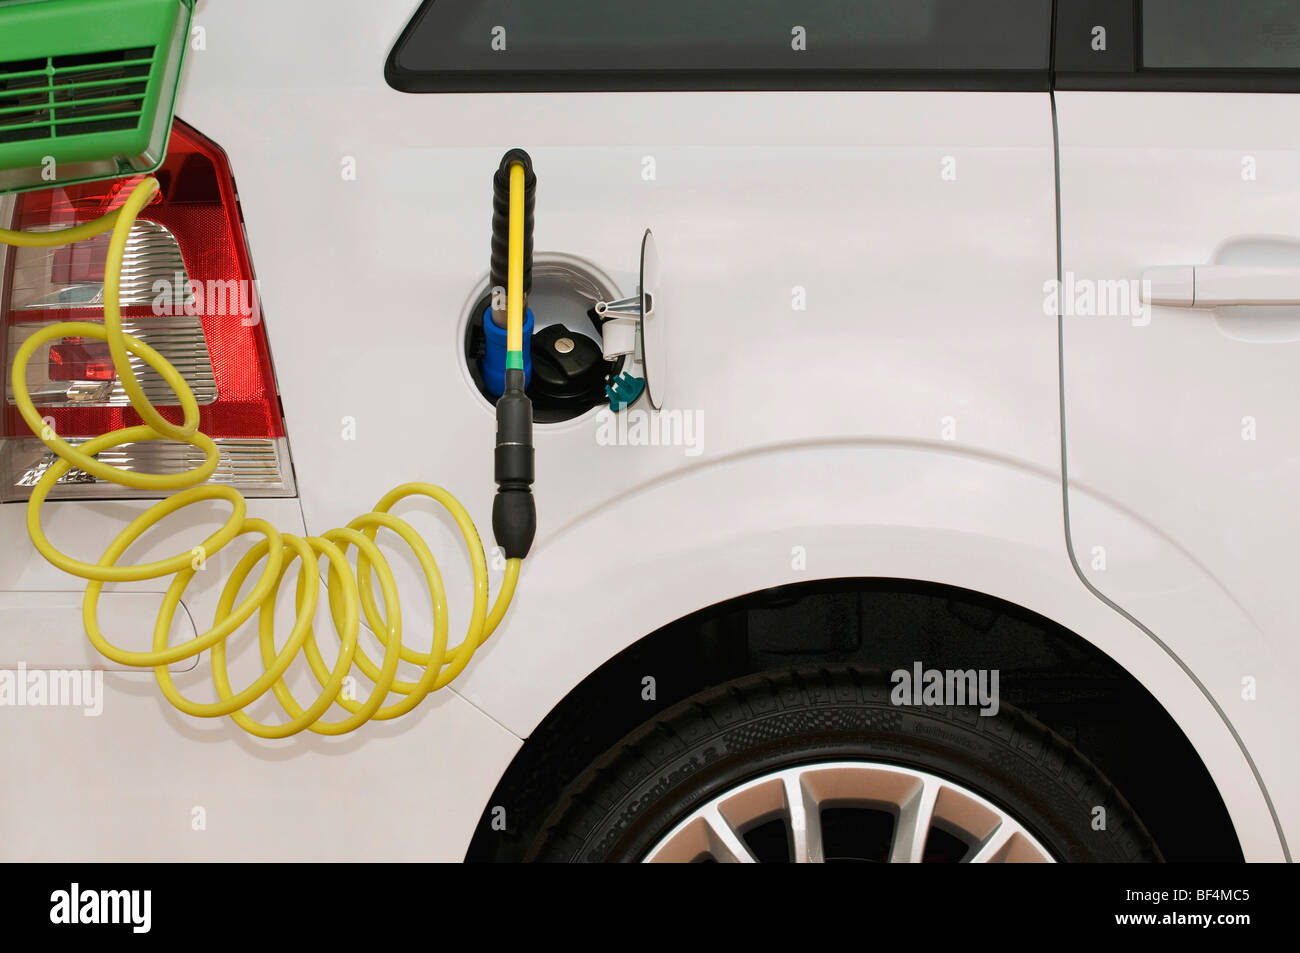 Refueling a car with a gas nozzle next to a conventional petrol cap - Stock Image